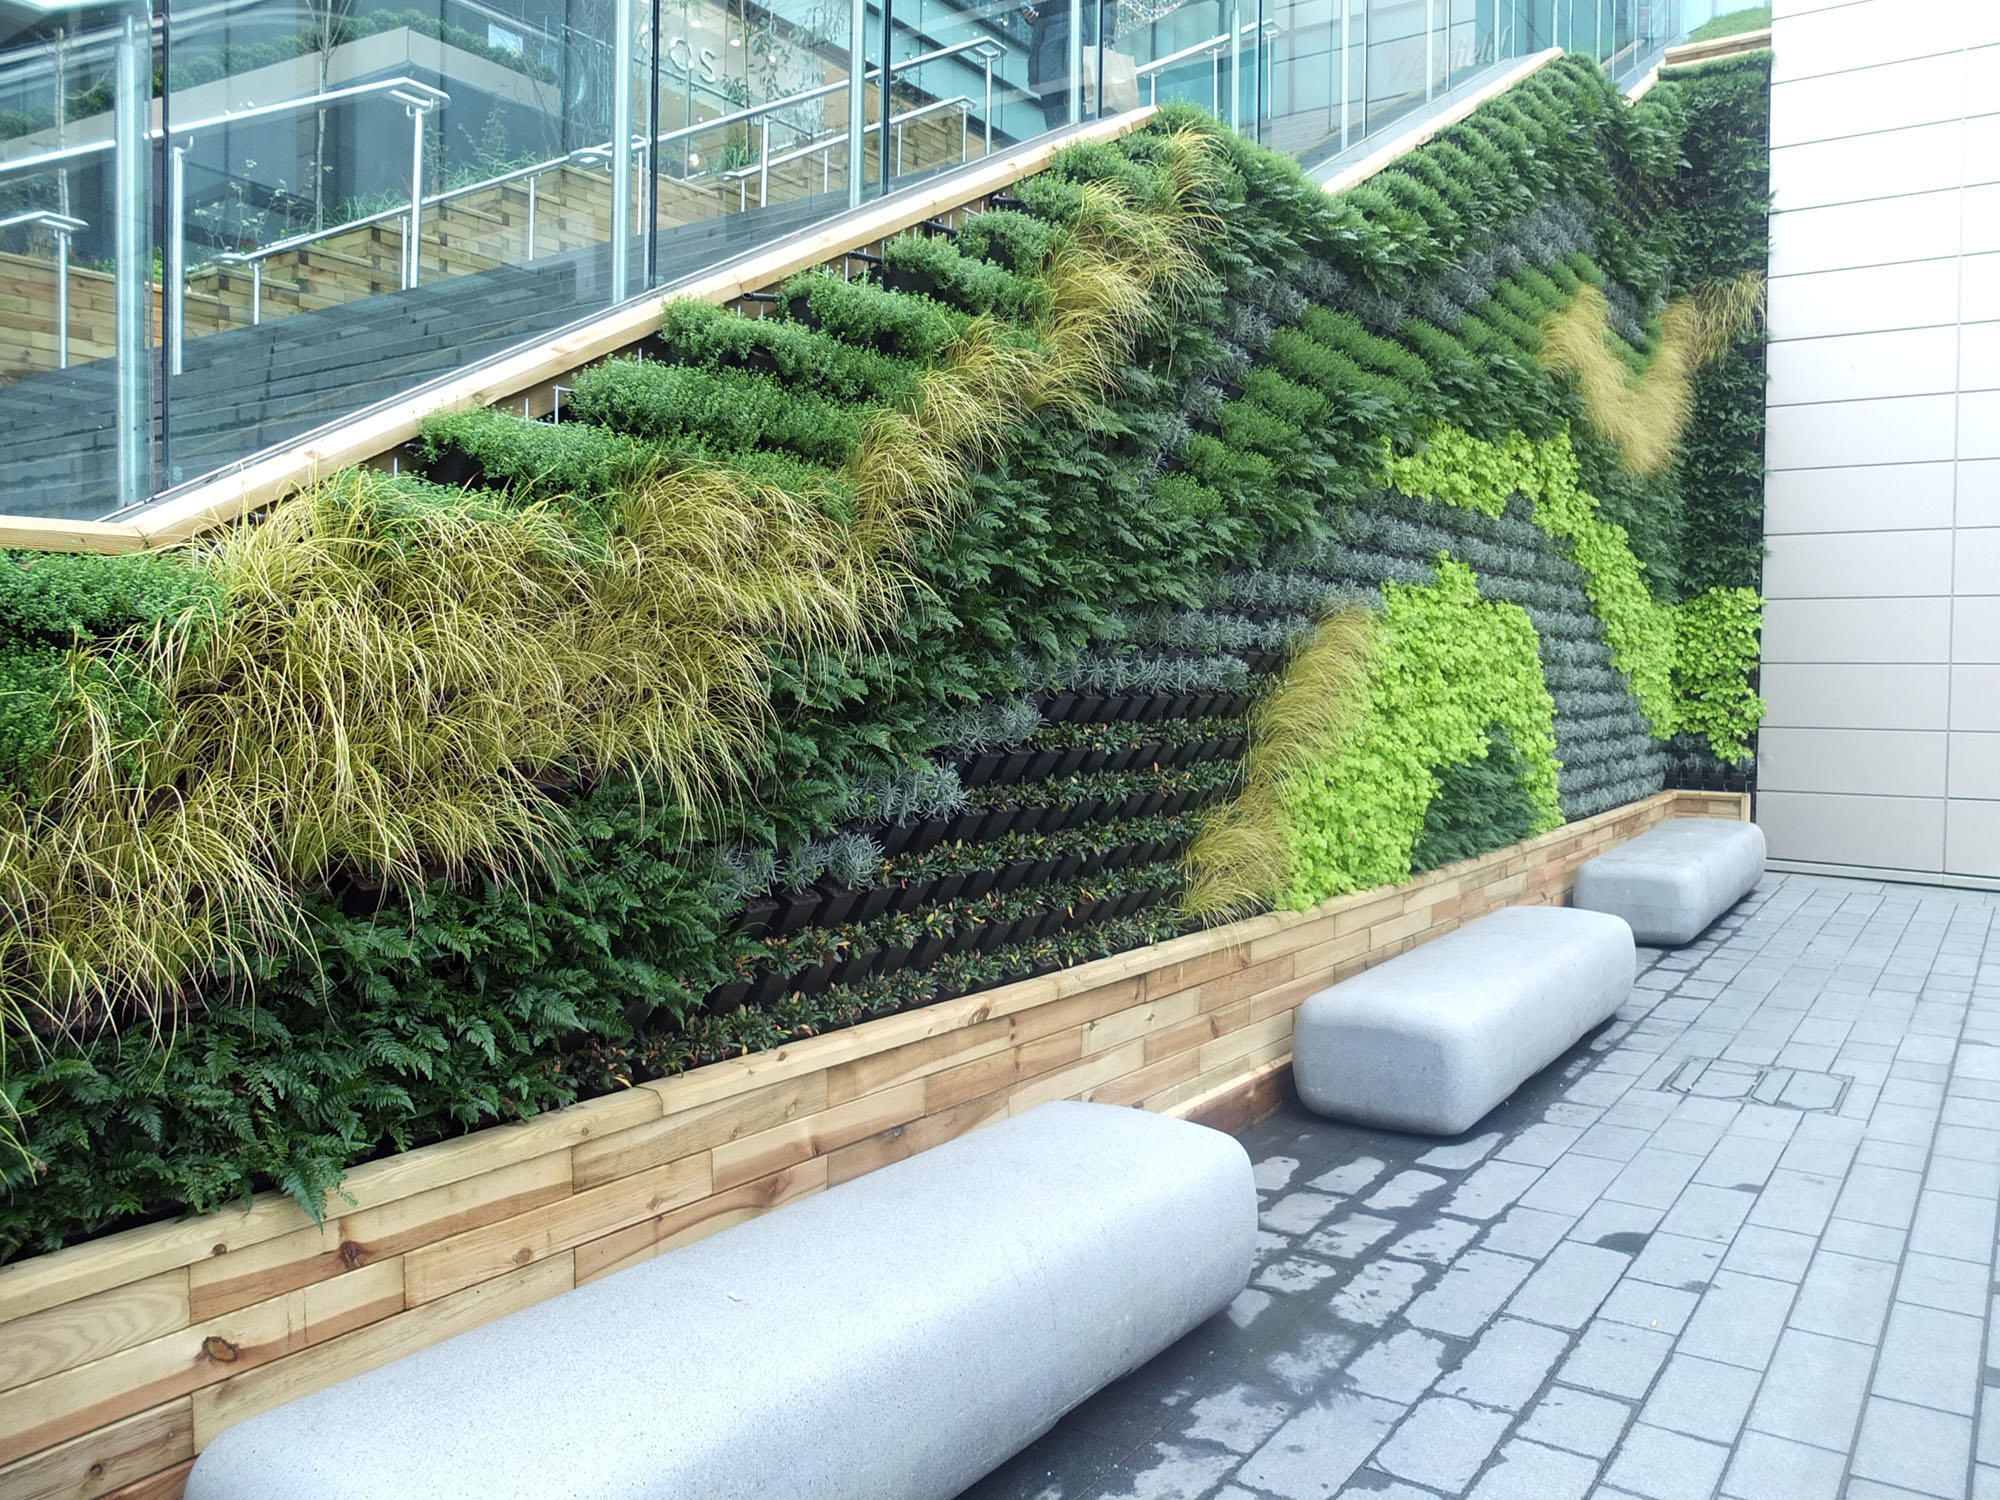 Eco wall on the side of a staircase with glass rails.